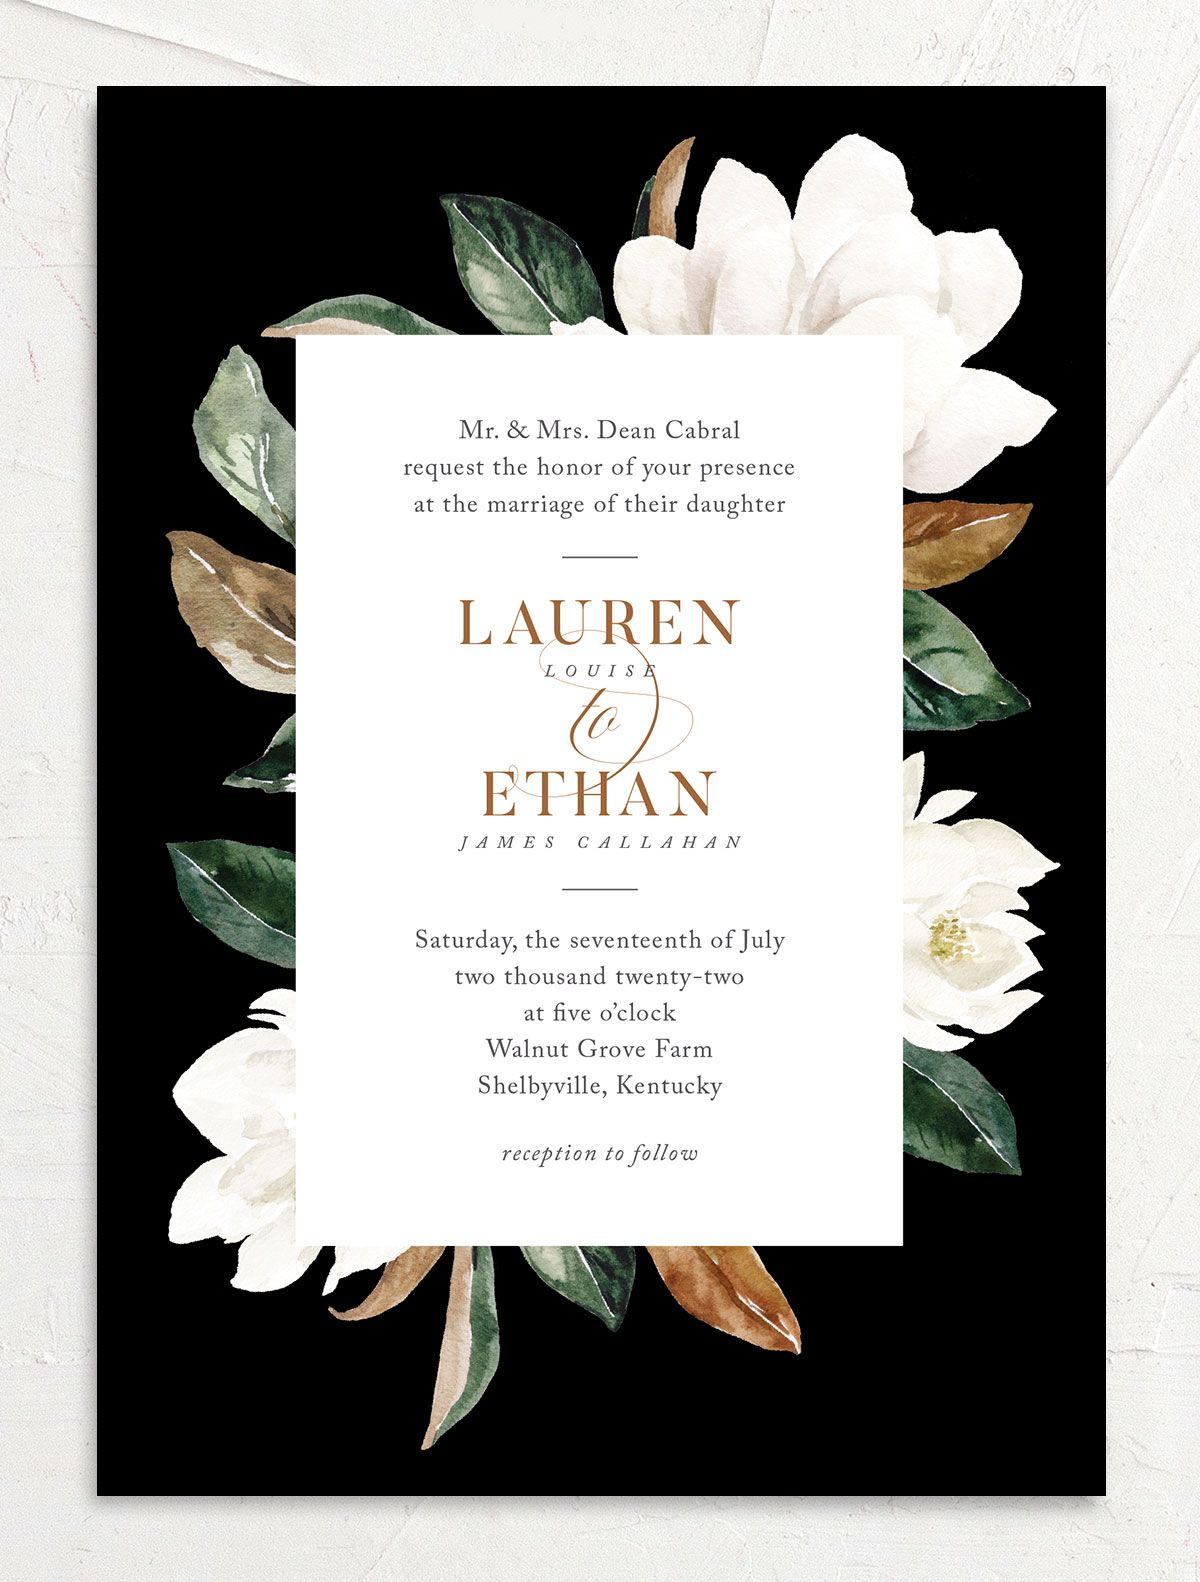 Painted Magnolia wedding invites in black